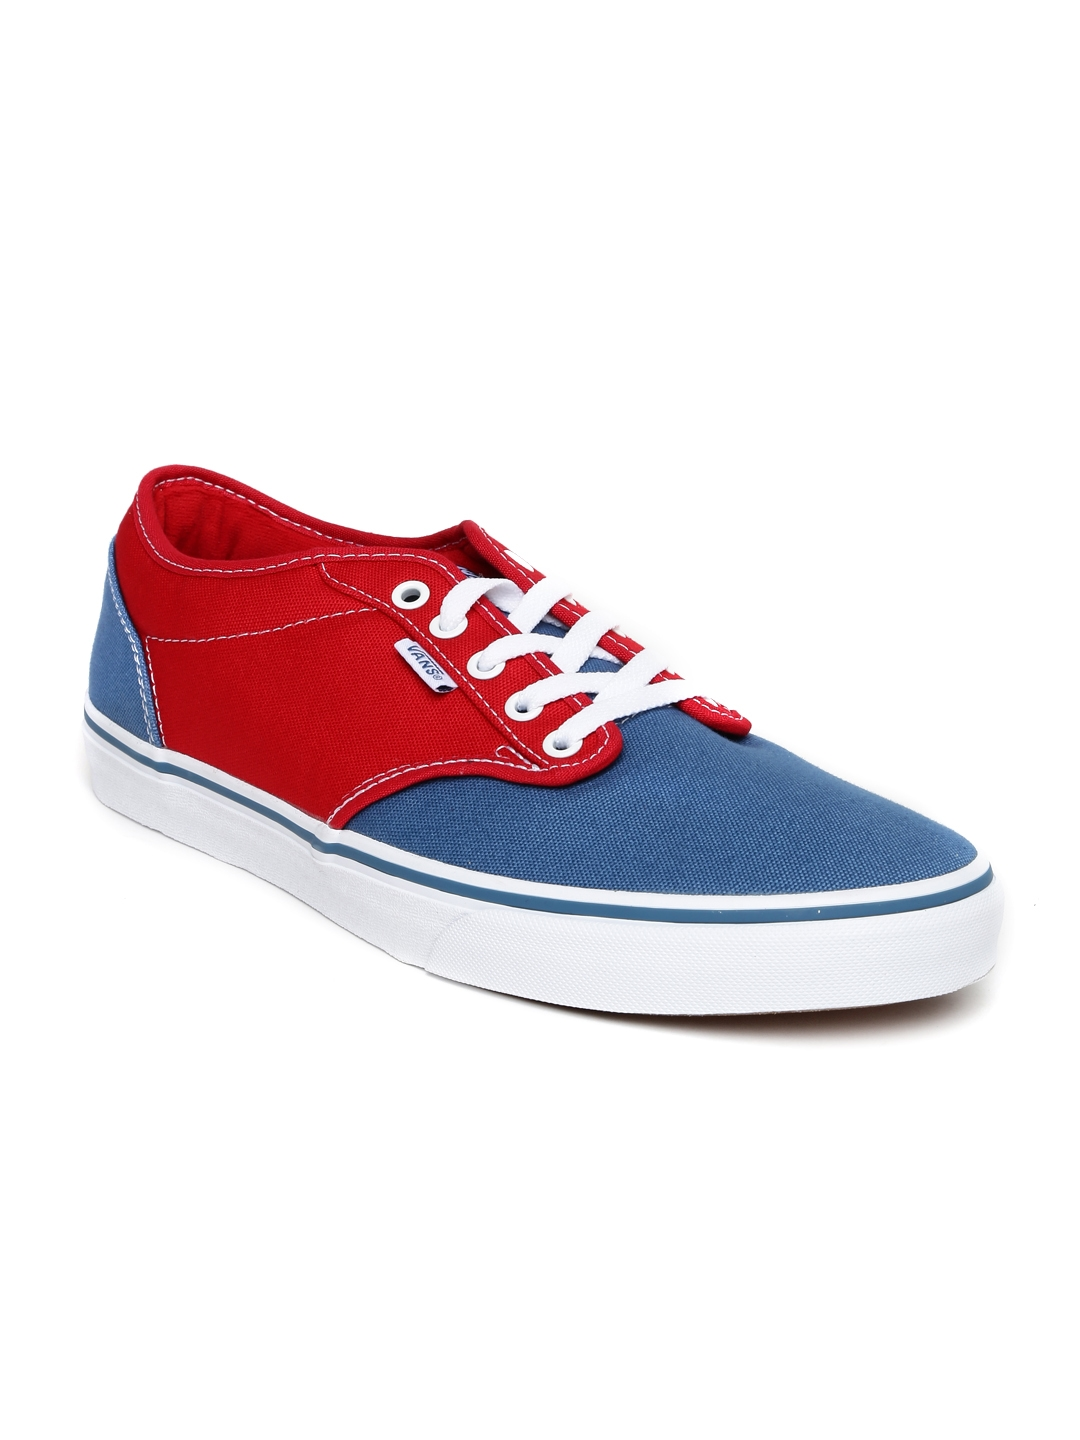 9083a6f091c48c Buy Vans Men Red   Blue Colourblocked Atwood Sneakers - Casual Shoes for Men  1593693